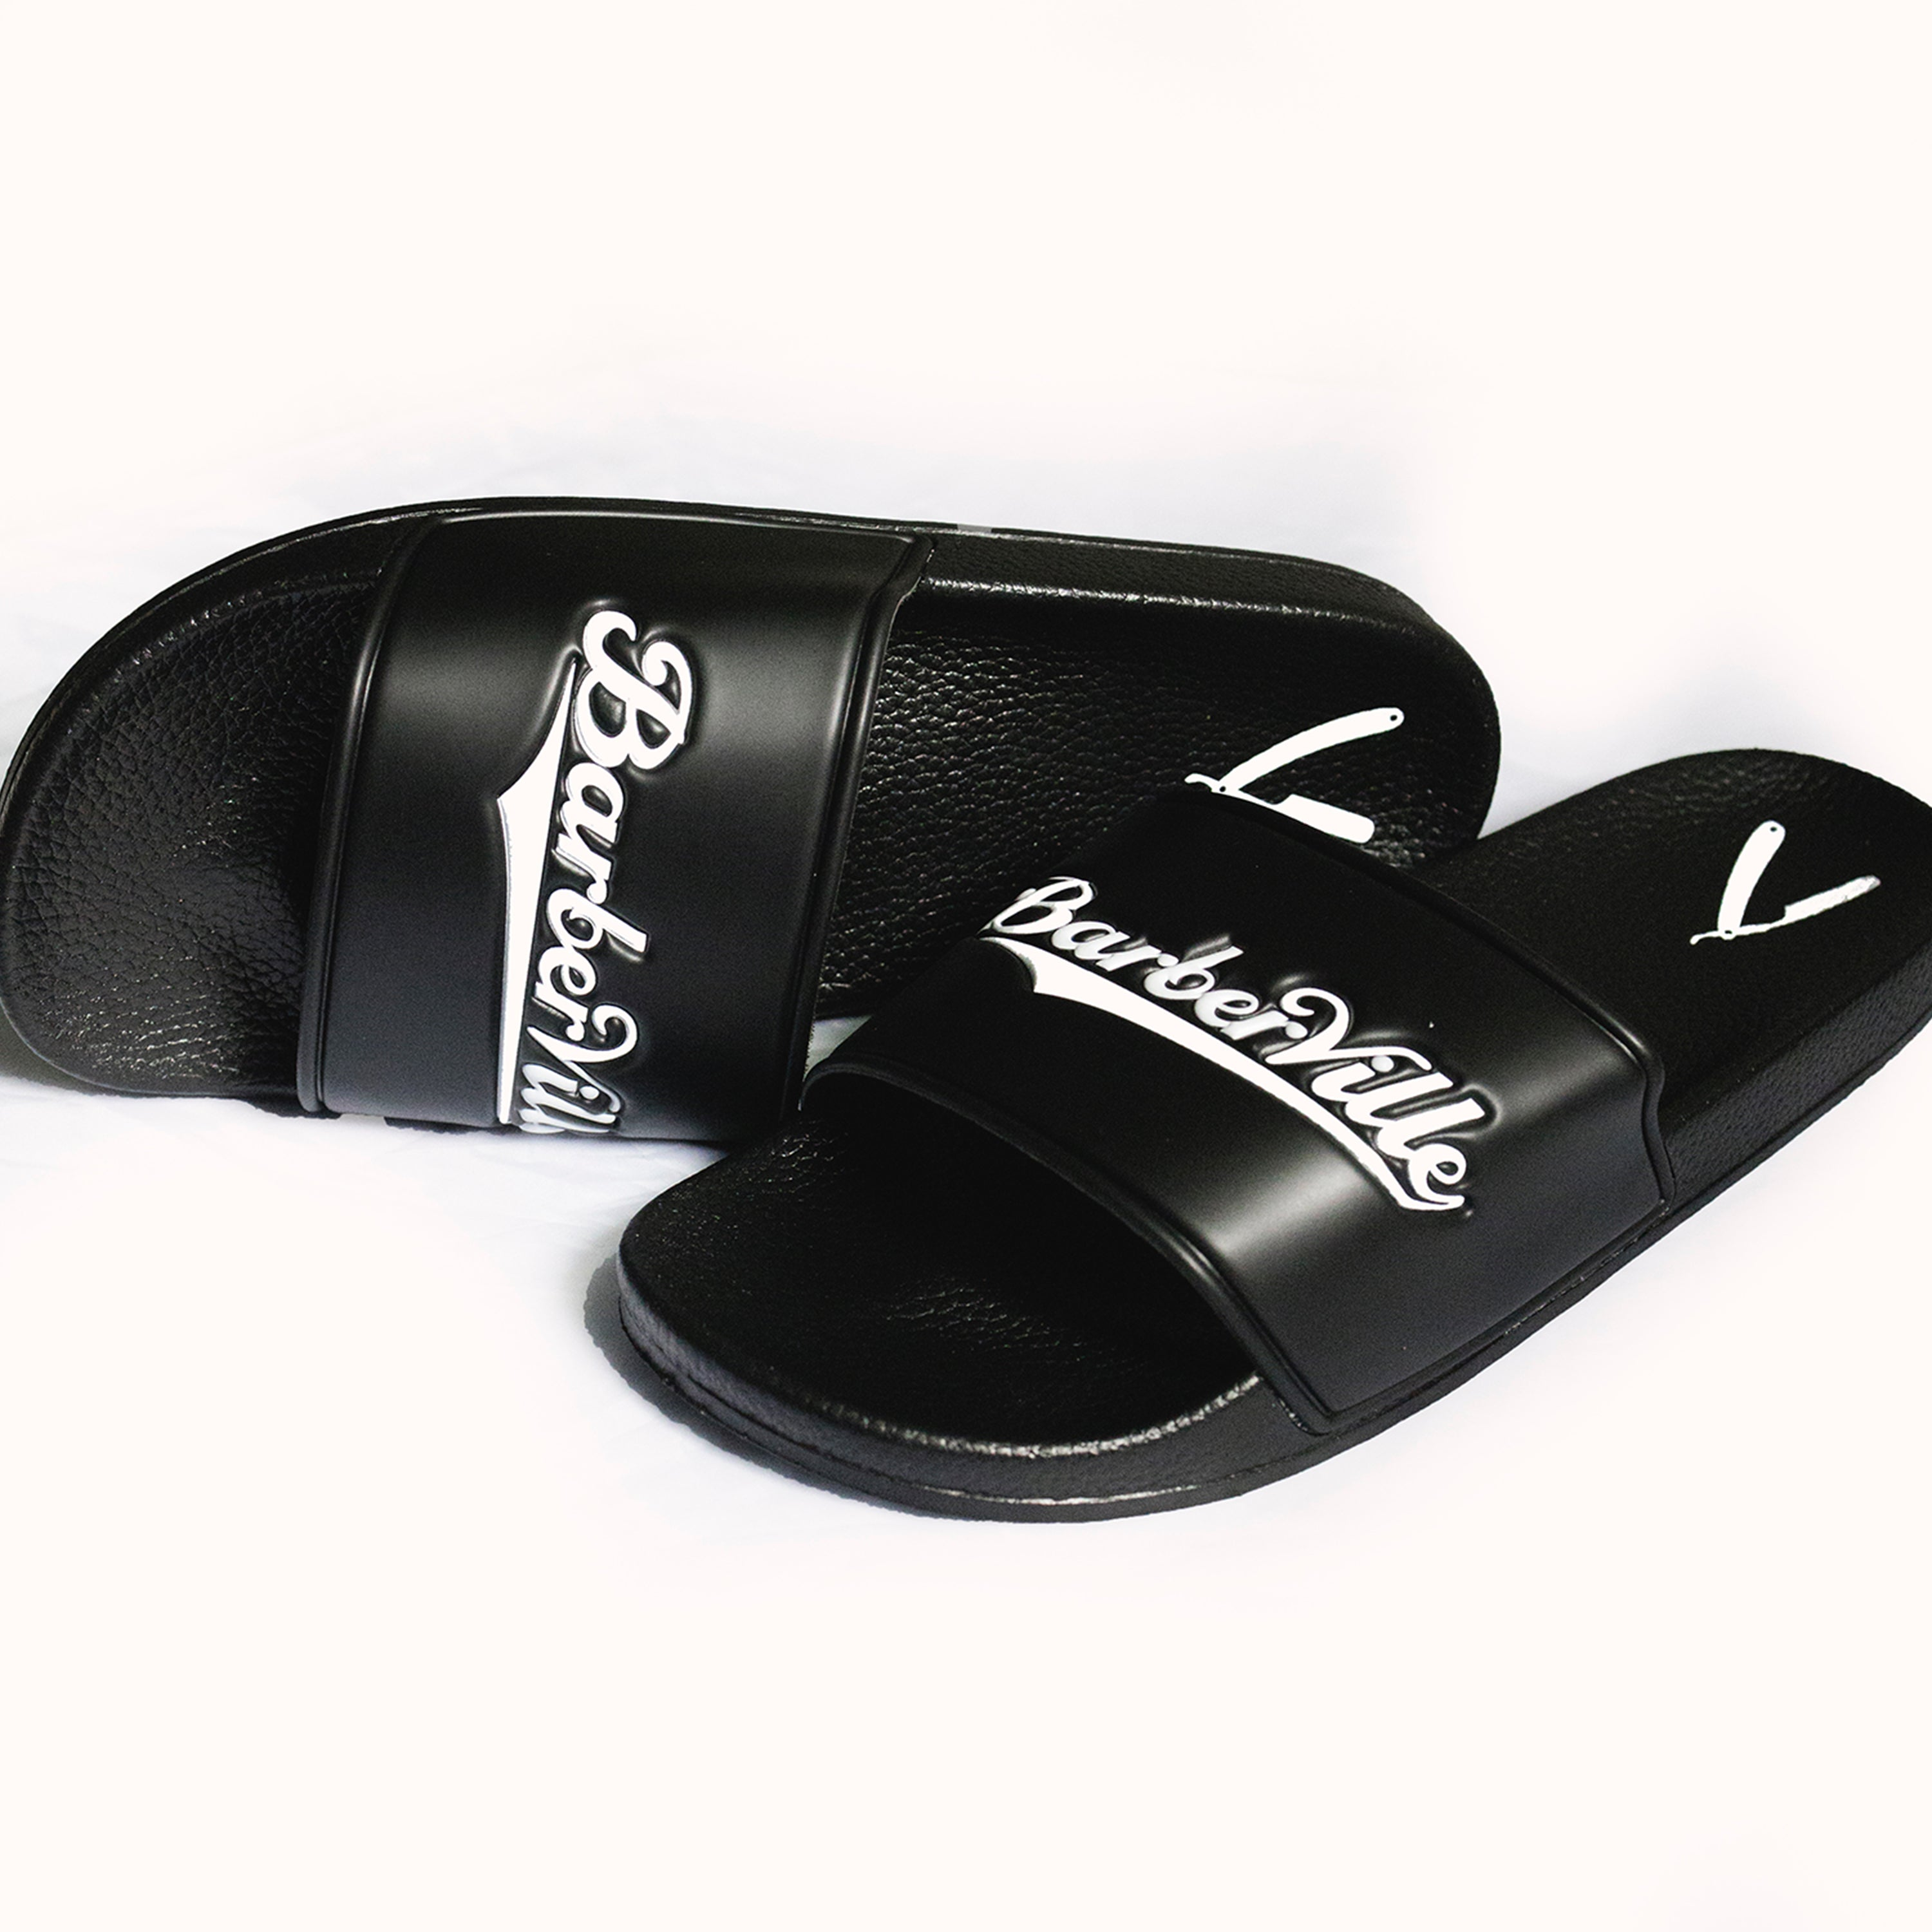 Premium BarberVille Slides (Black)